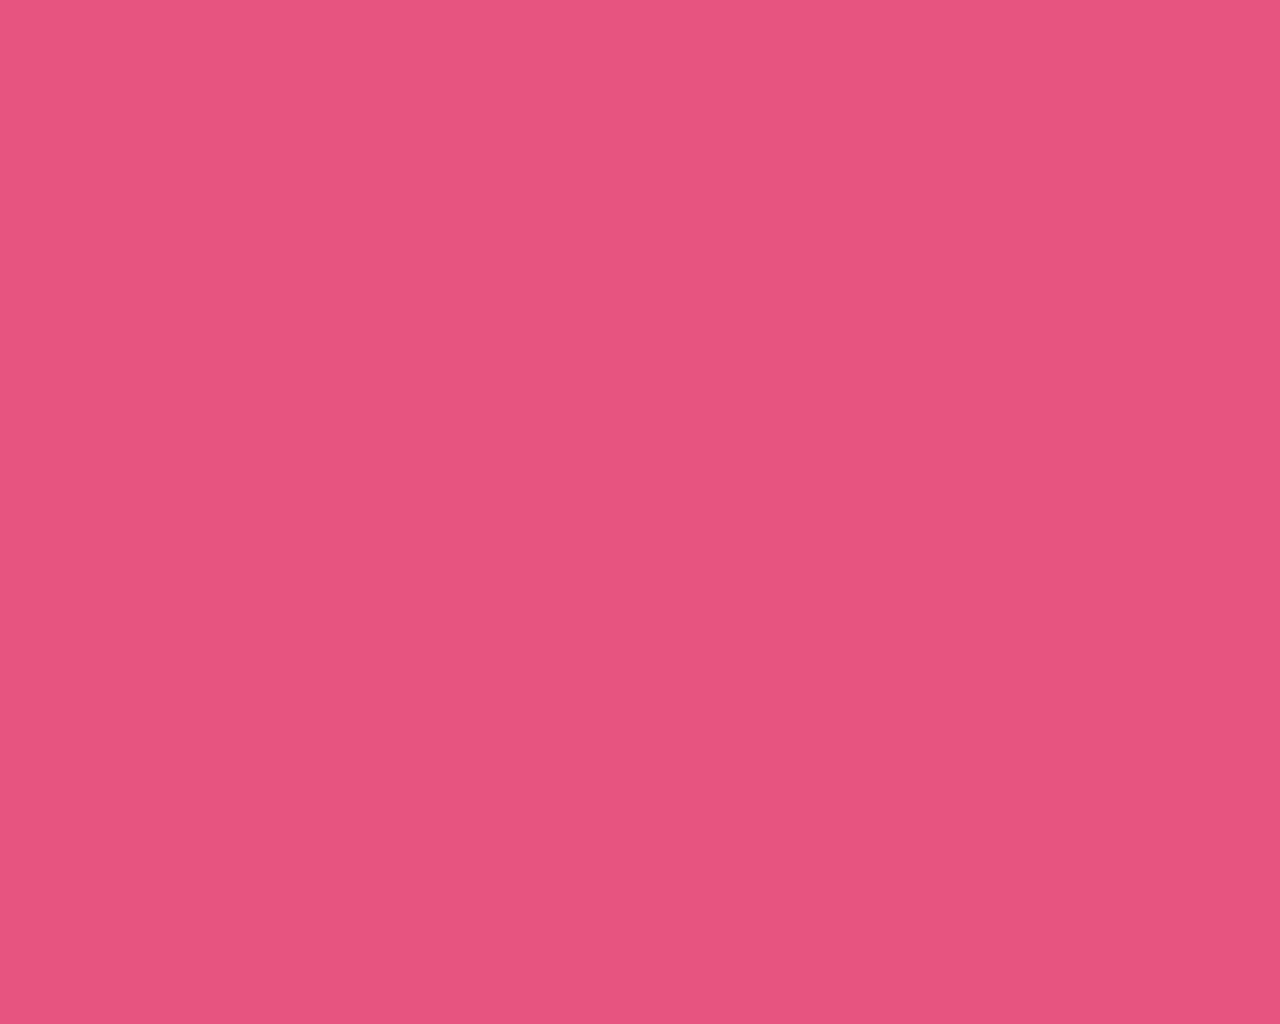 Pink Solid Color Background 1280x1024